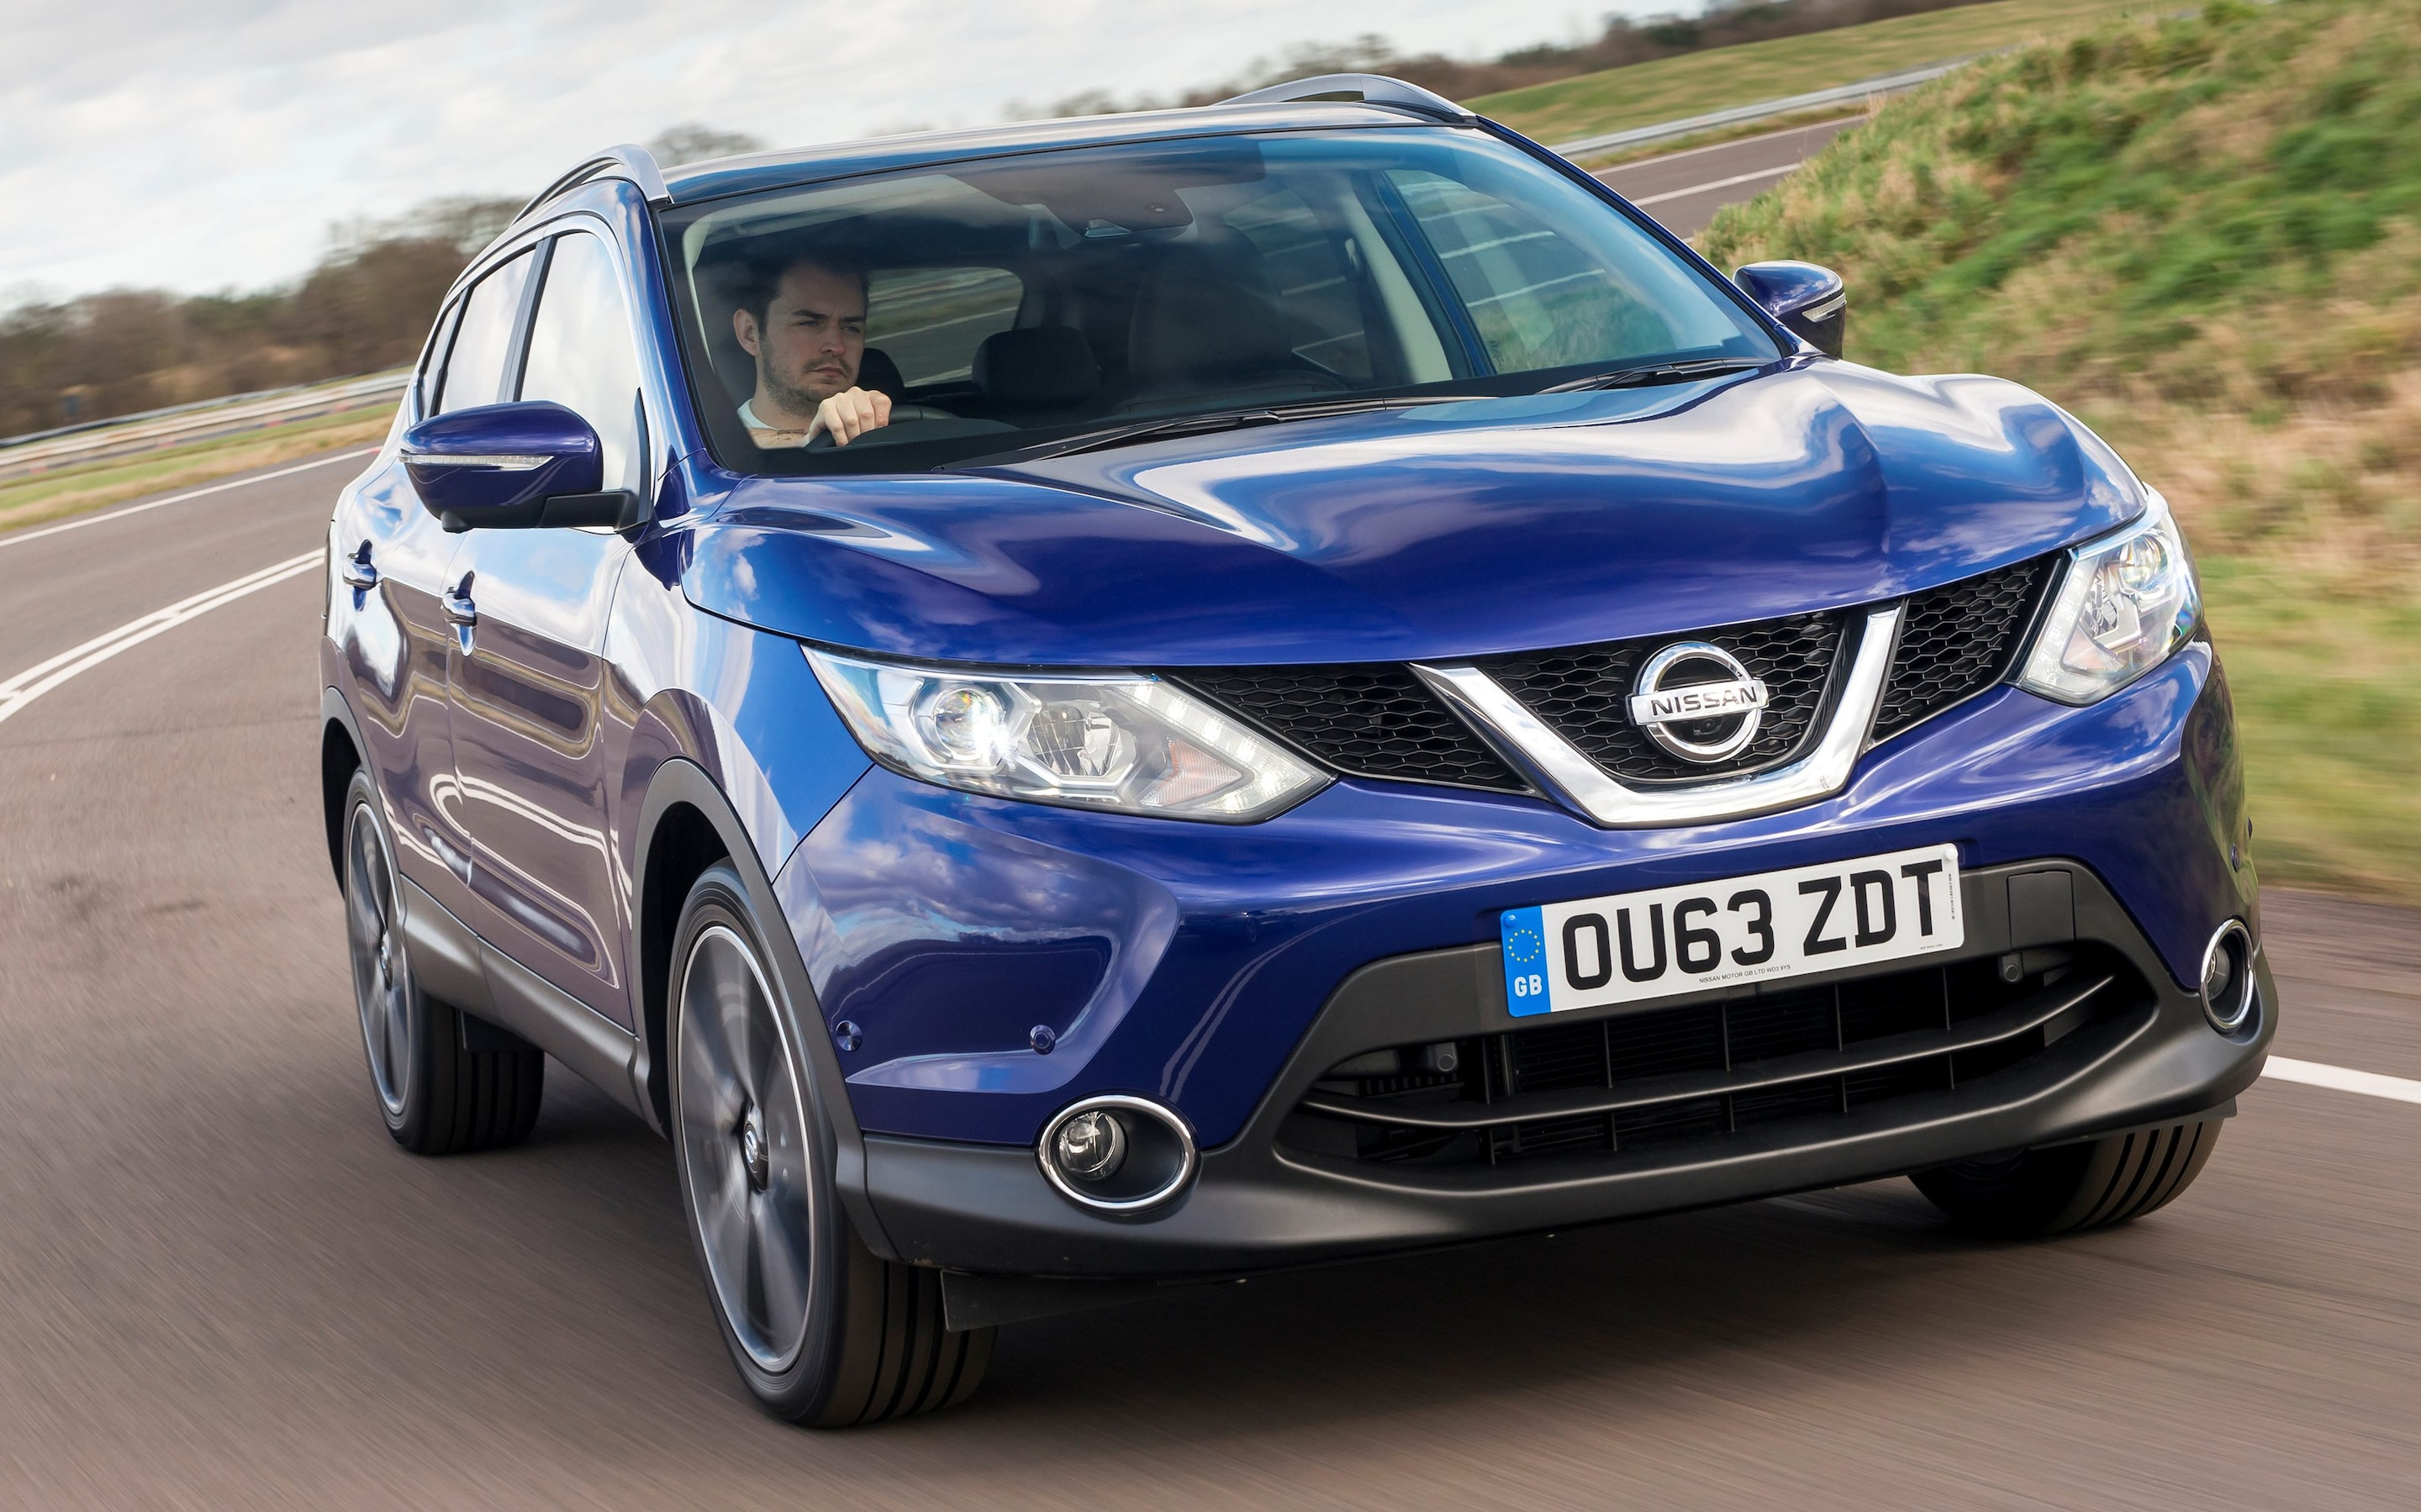 2015 nissan navara driven worth picking up nissan qashqai cornering [ 2880 x 1799 Pixel ]